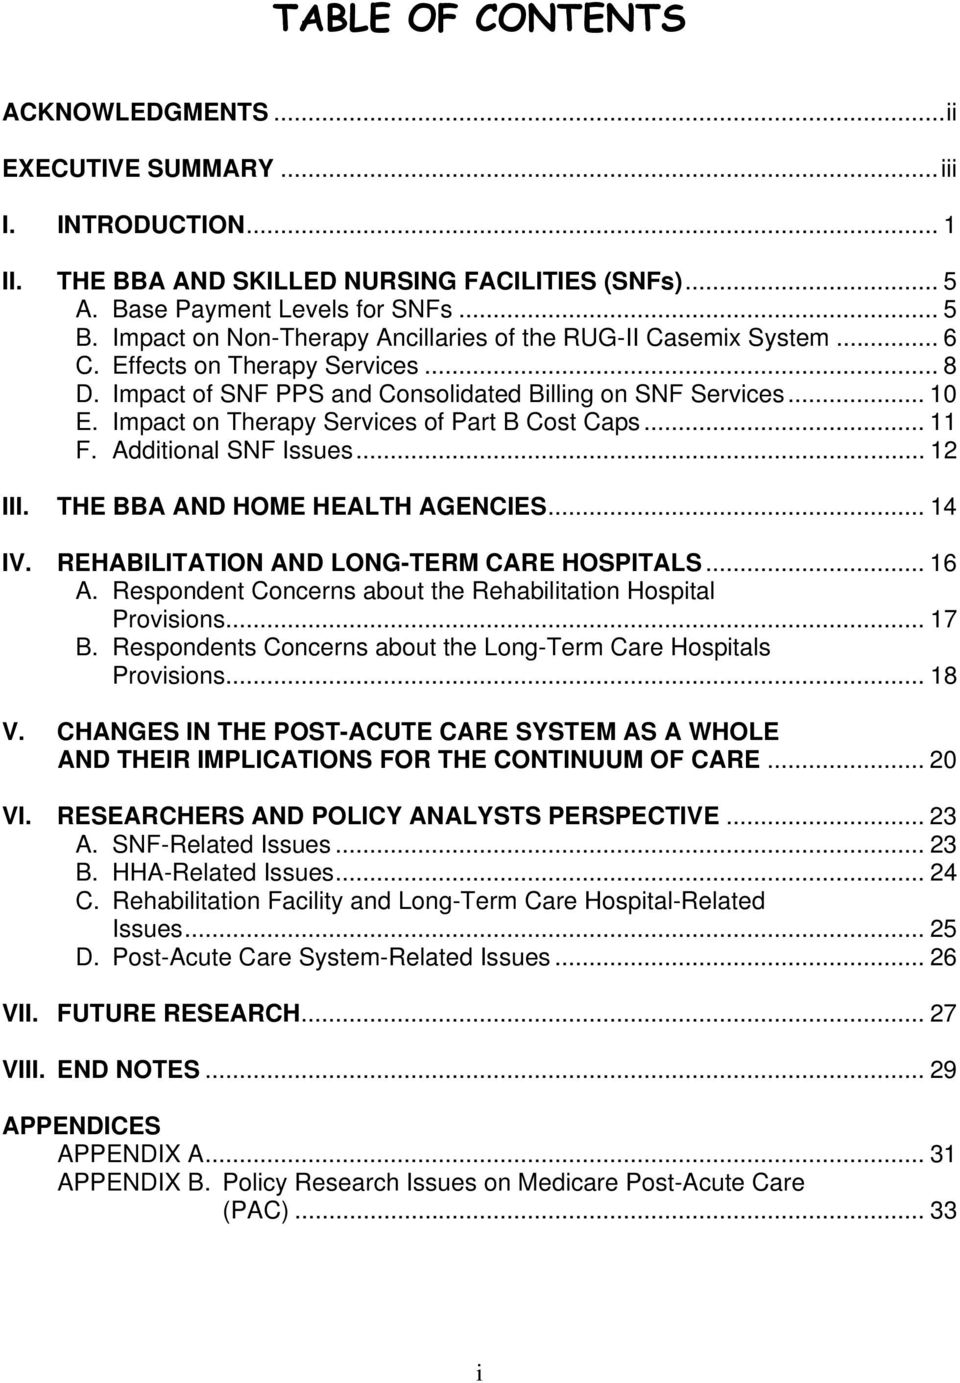 Impact on Therapy Services of Part B Cost Caps... 11 F. Additional SNF Issues... 12 III. THE BBA AND HOME HEALTH AGENCIES... 14 IV. REHABILITATION AND LONG-TERM CARE HOSPITALS... 16 A.